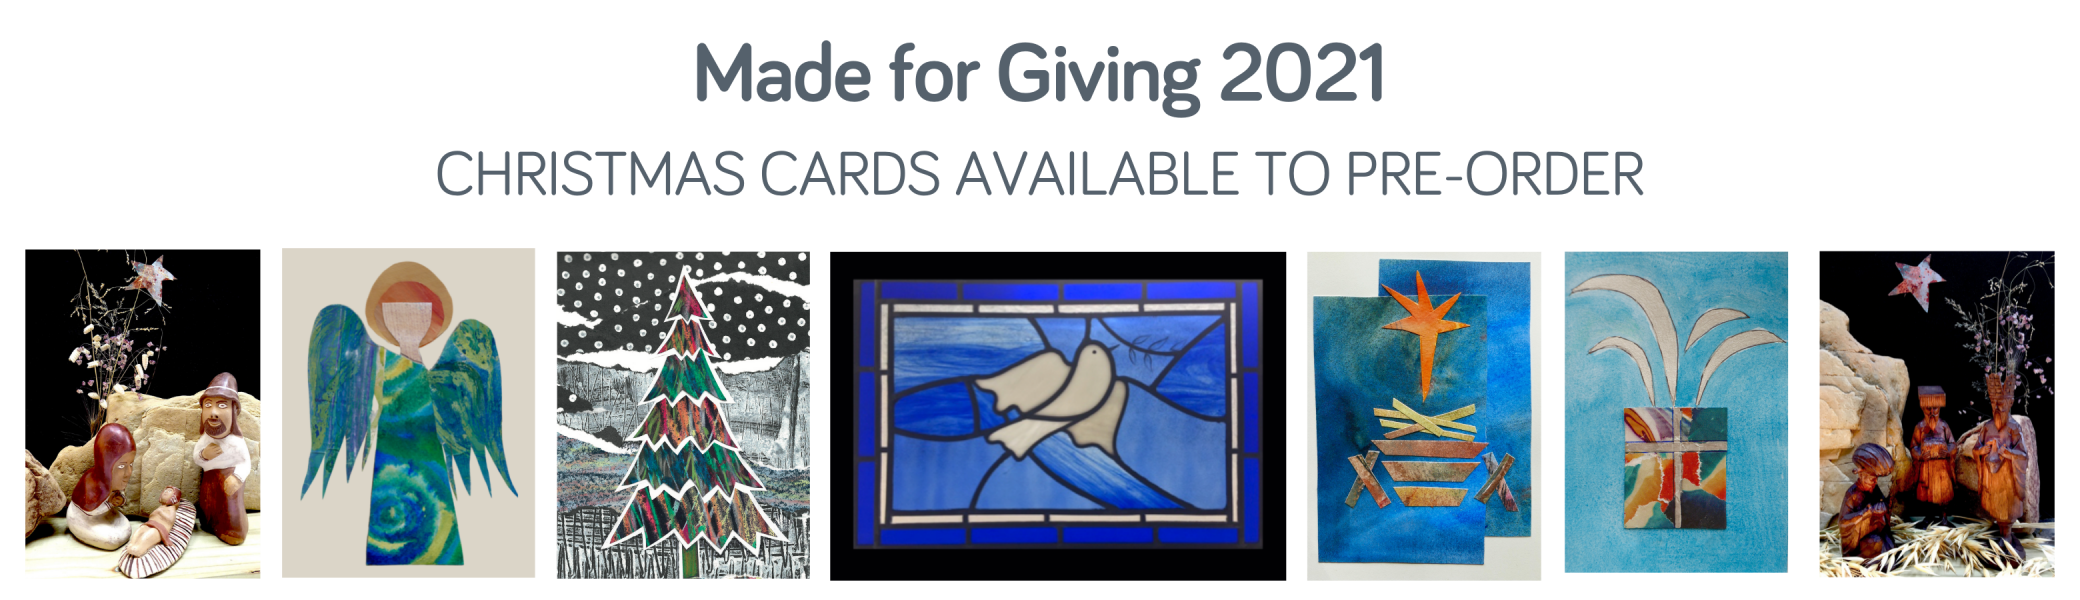 Made for Giving 21 preorder cards - wellspring